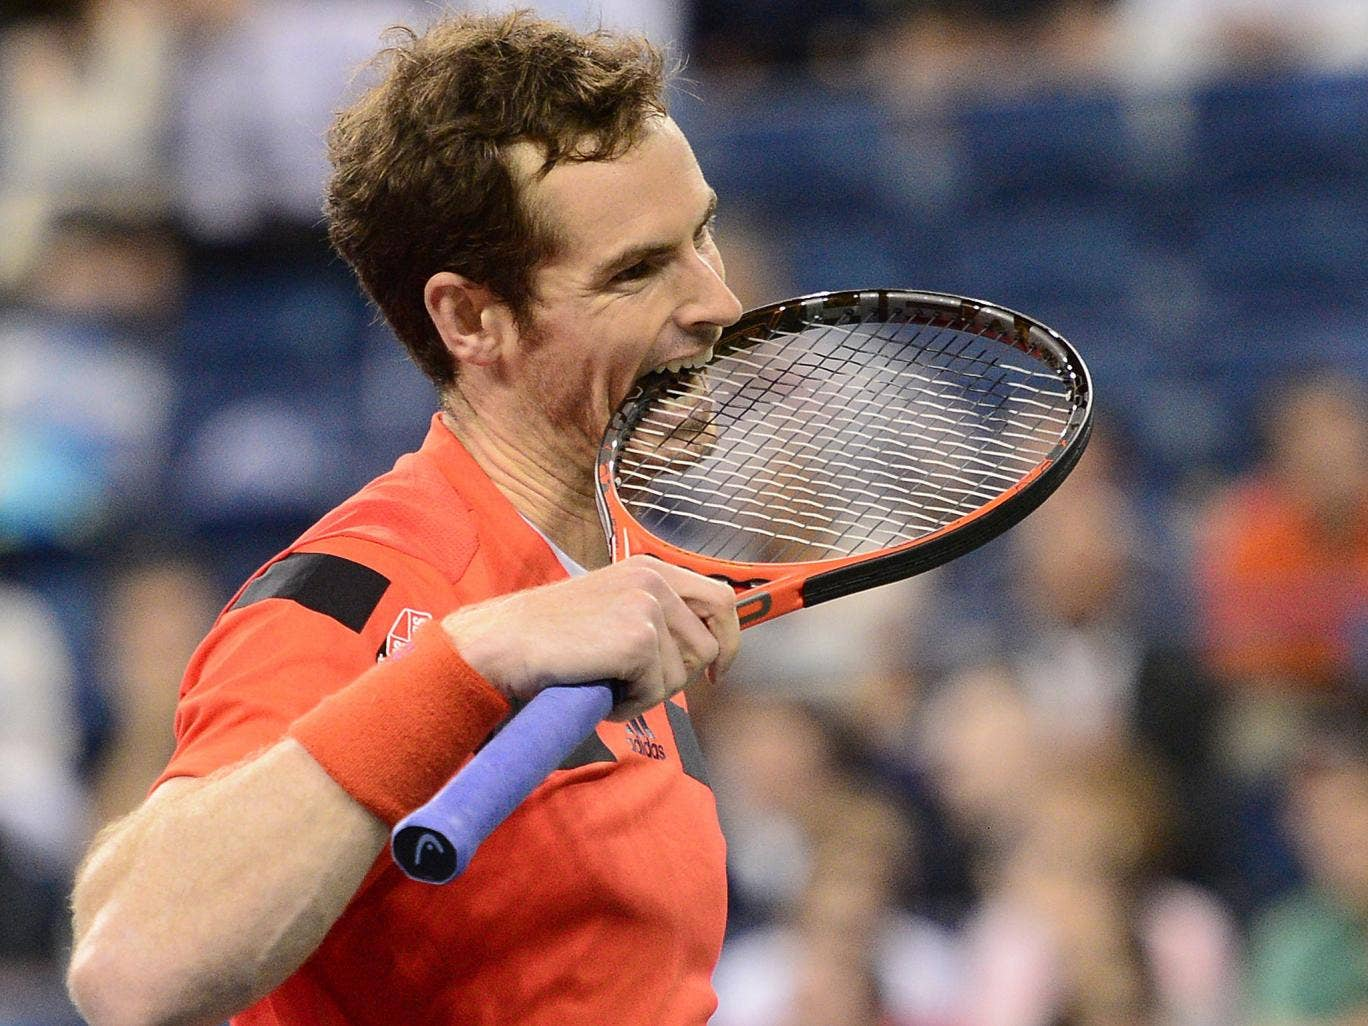 Andy Murray shows his frustration during his win over Denis Istomin